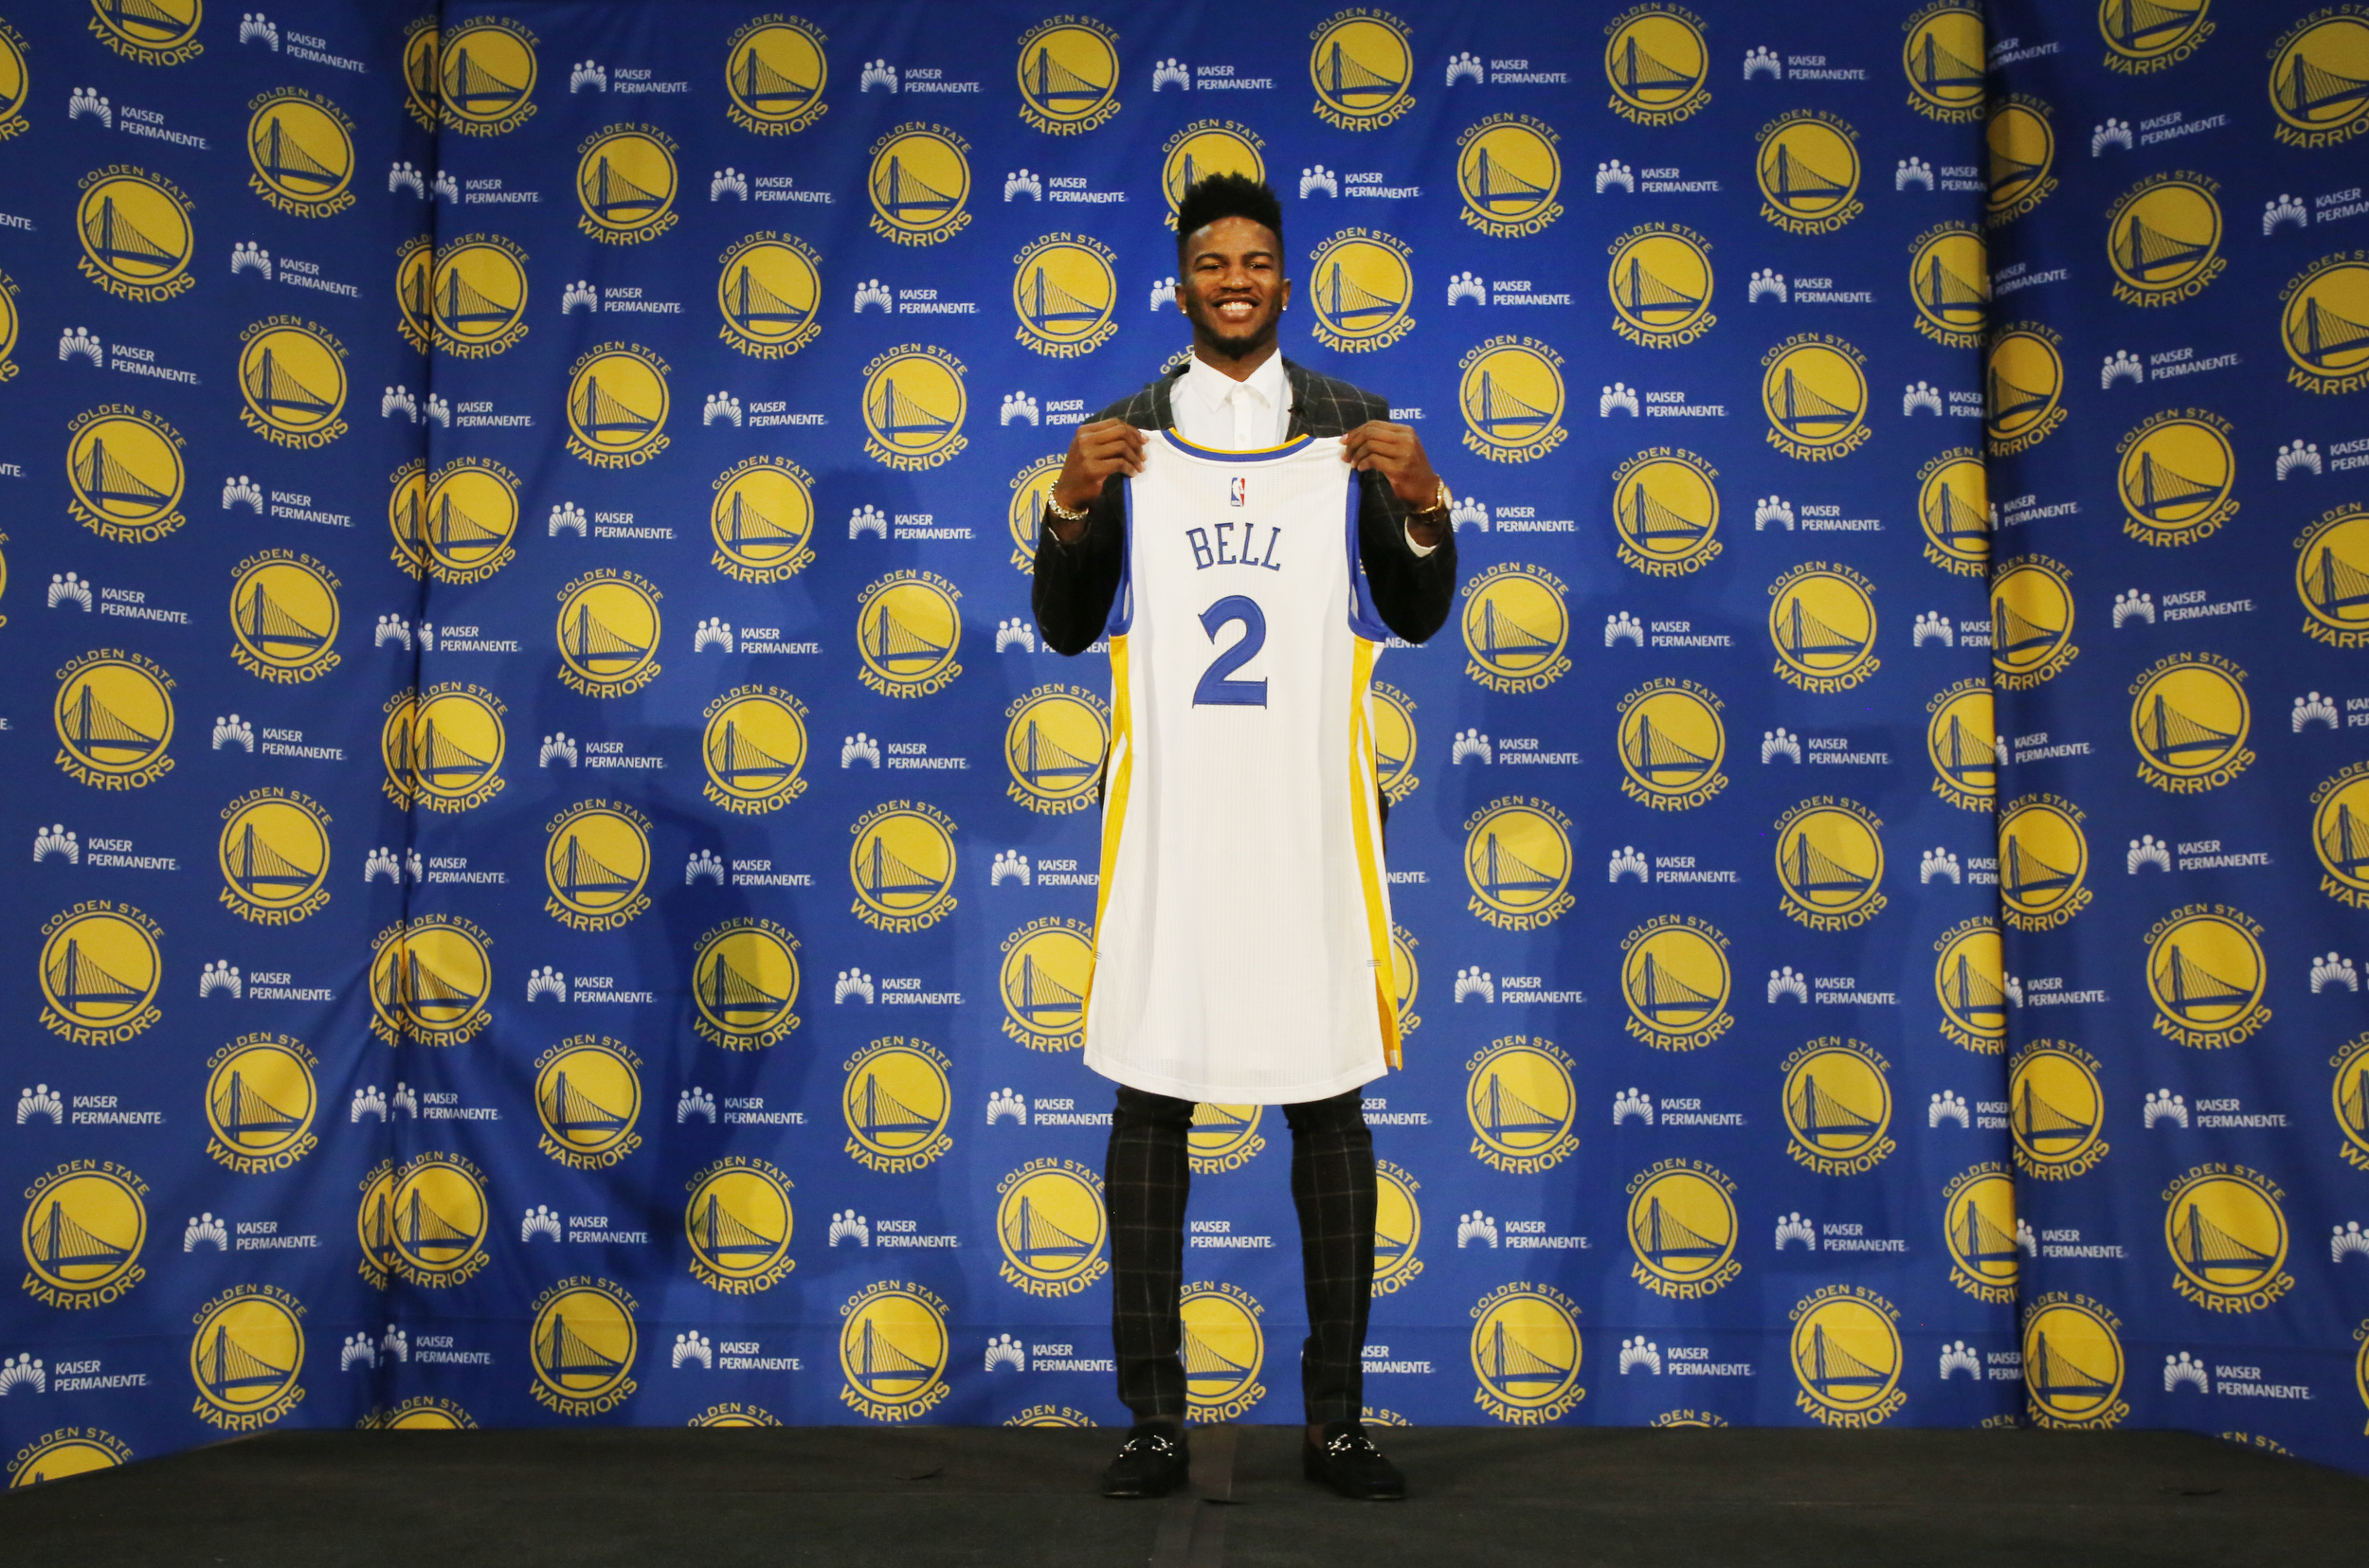 Warriors' draft pick Jordan Bell poses with his jersey at the Warriors' headquarters in Oakland, Calif., on Friday, June 23, 2017. Warriors held a press conference to introduce newest Warrior Jordan Bell. (Laura A. Oda/Bay Area News Group)